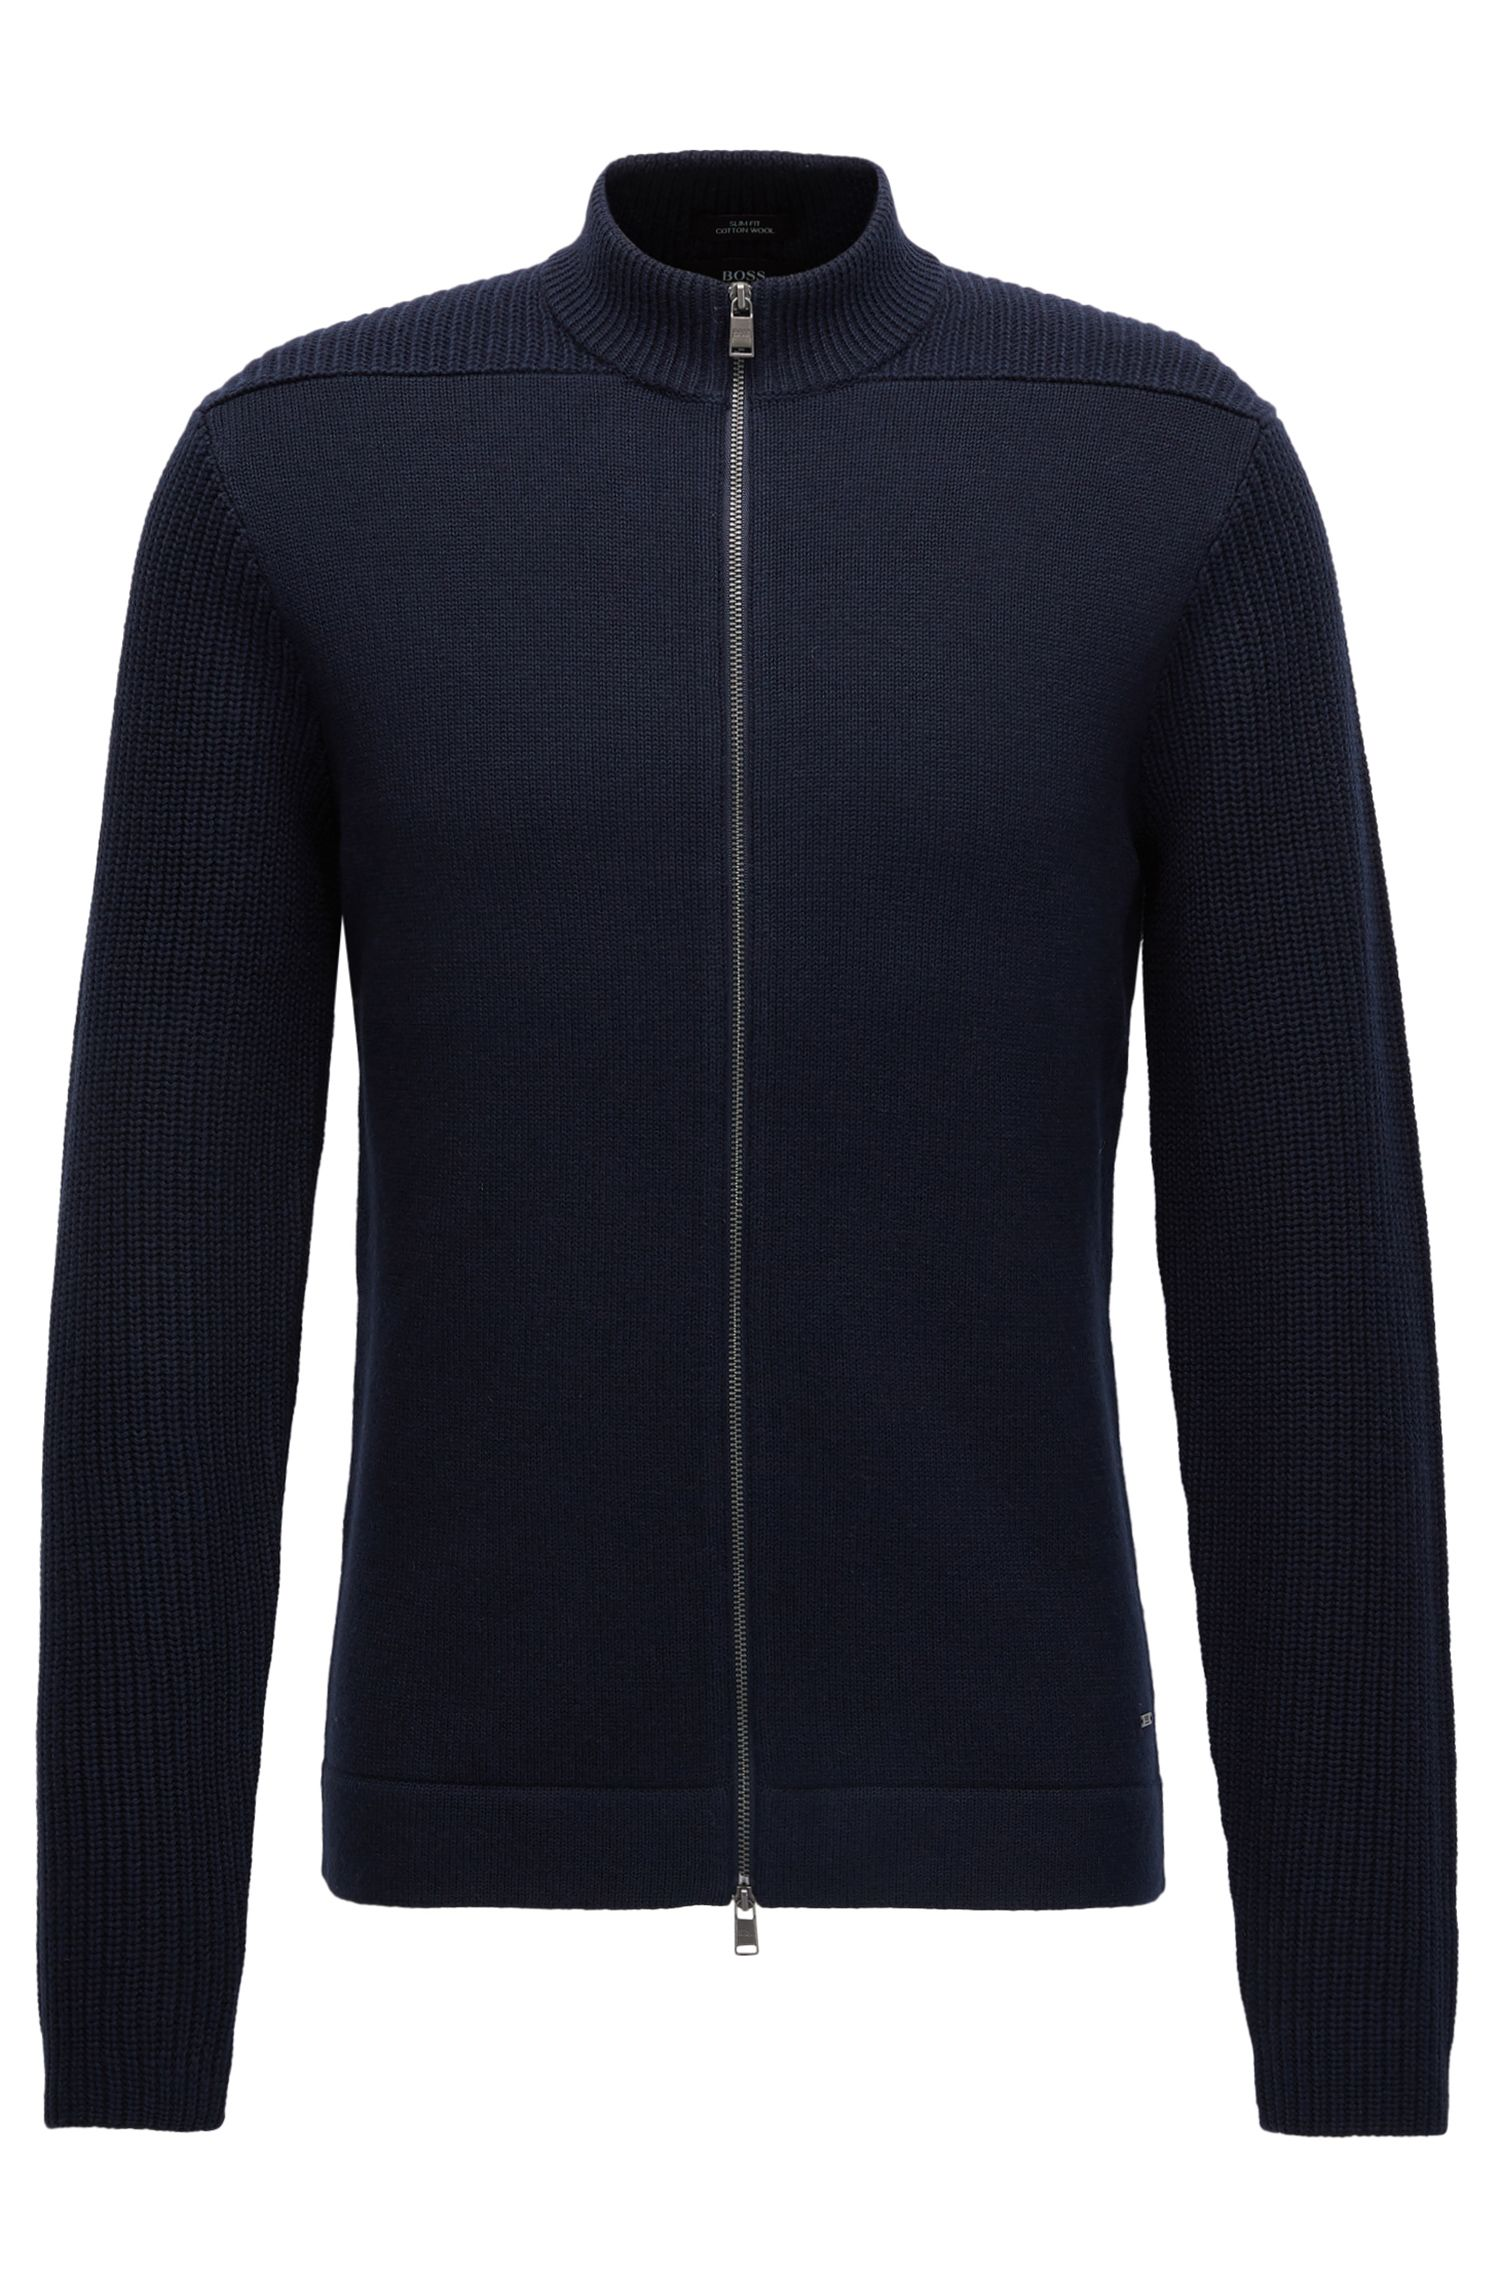 Cotton-Wool Full-Zip Jacket | Picetti